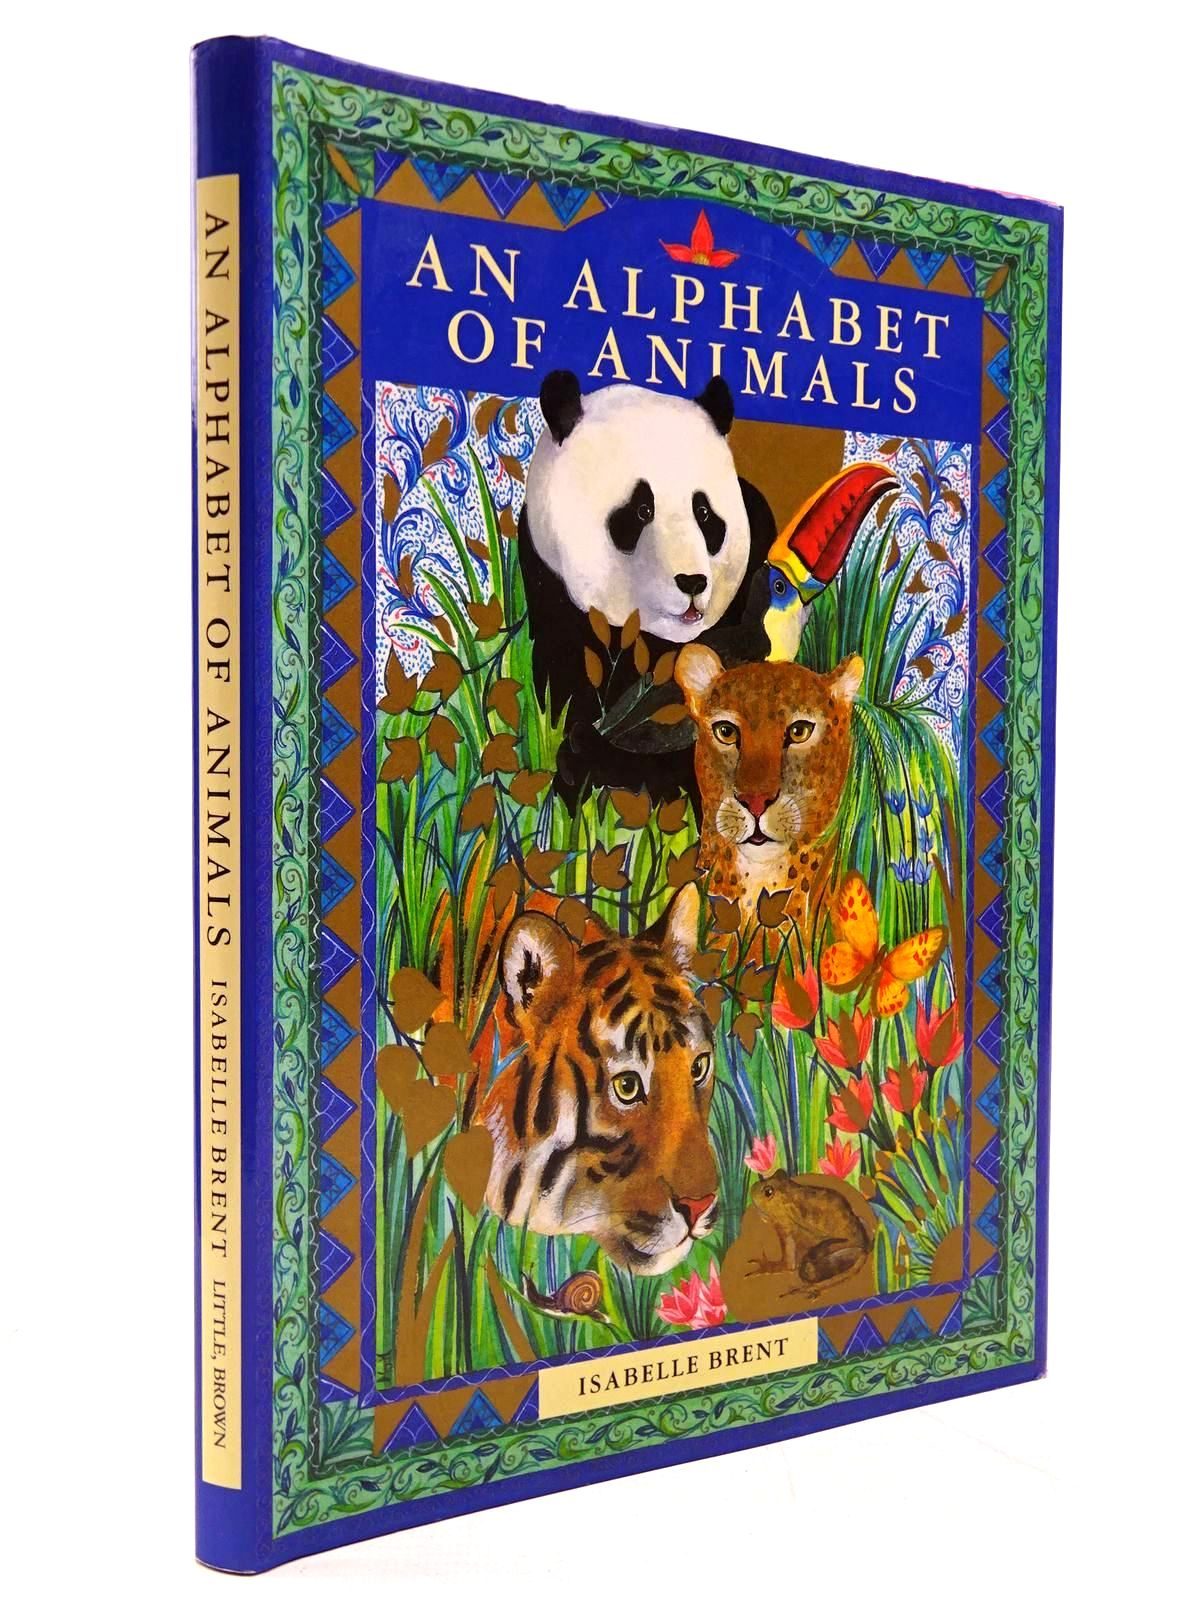 Photo of AN ALPHABET OF ANIMALS written by Brent, Isabelle illustrated by Brent, Isabelle published by Little, Brown and Company (STOCK CODE: 2130738)  for sale by Stella & Rose's Books